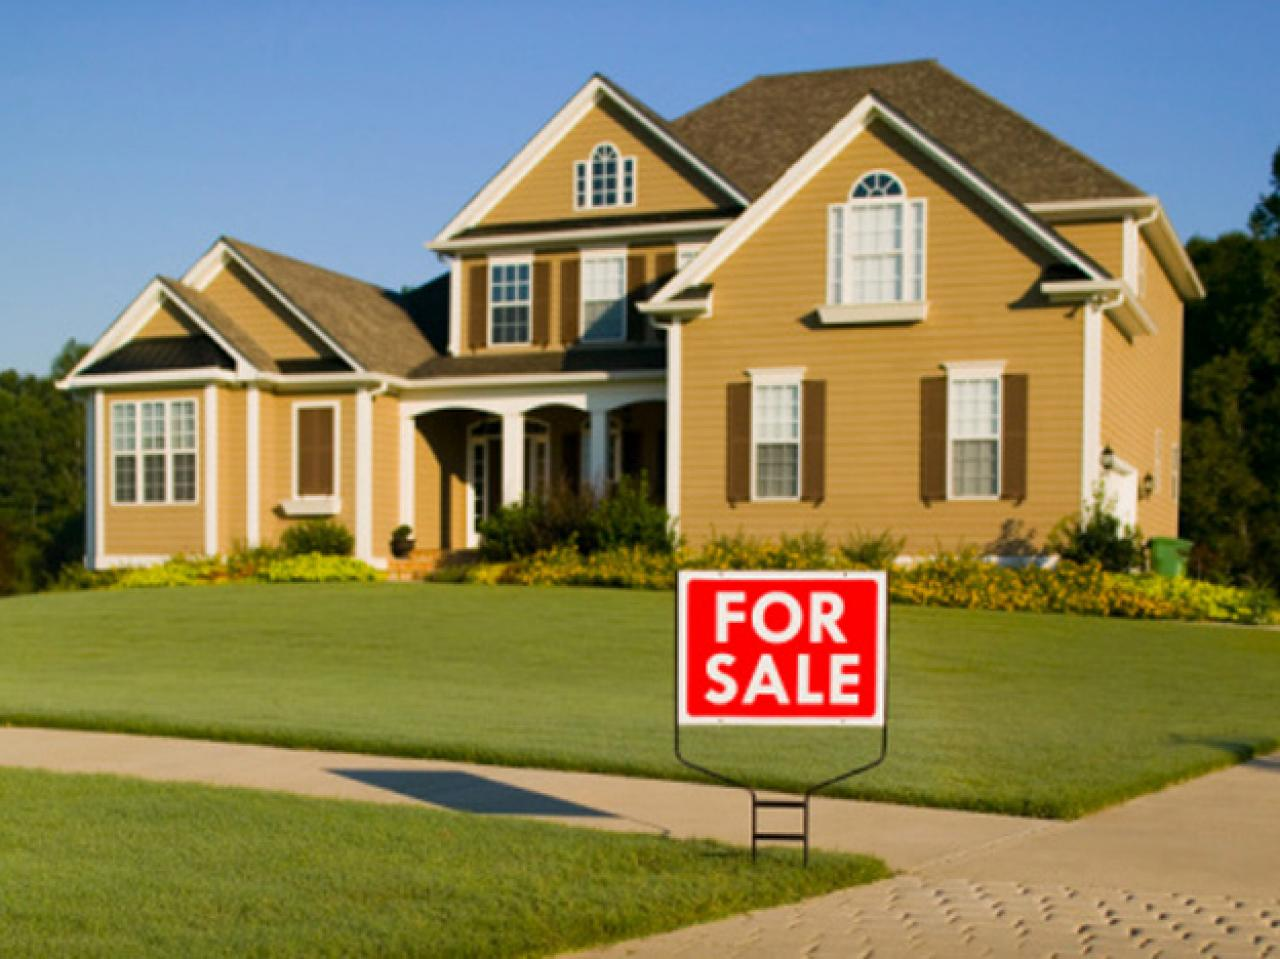 Hire The Right Real Estate Agent And Your Home Fast Tips For Getting Off Market